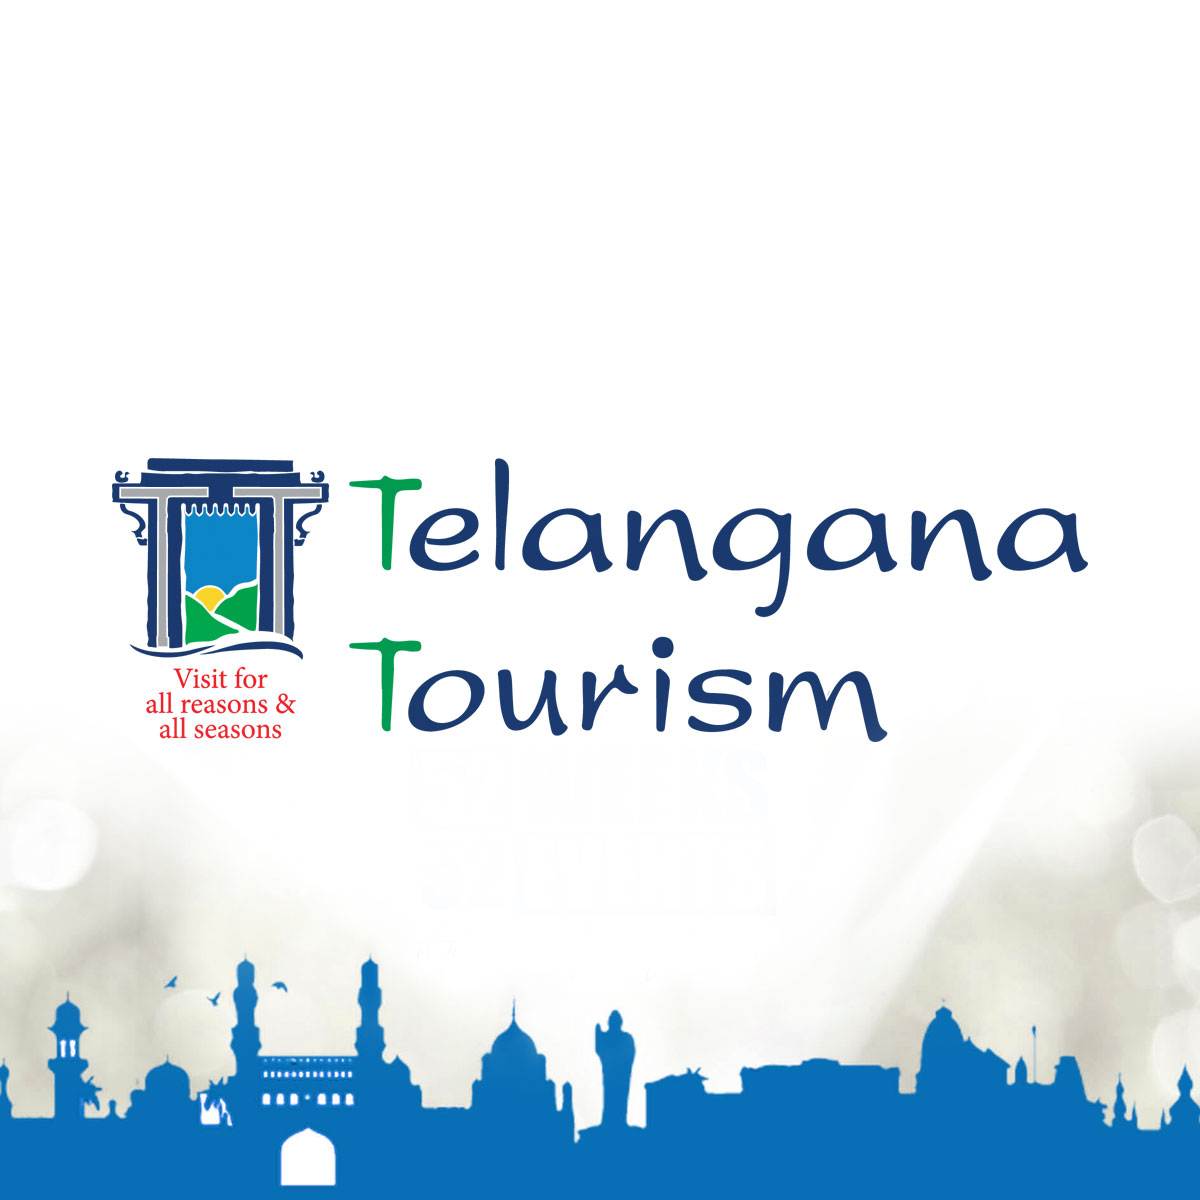 Boating is safe in Telangana: Tourism officials